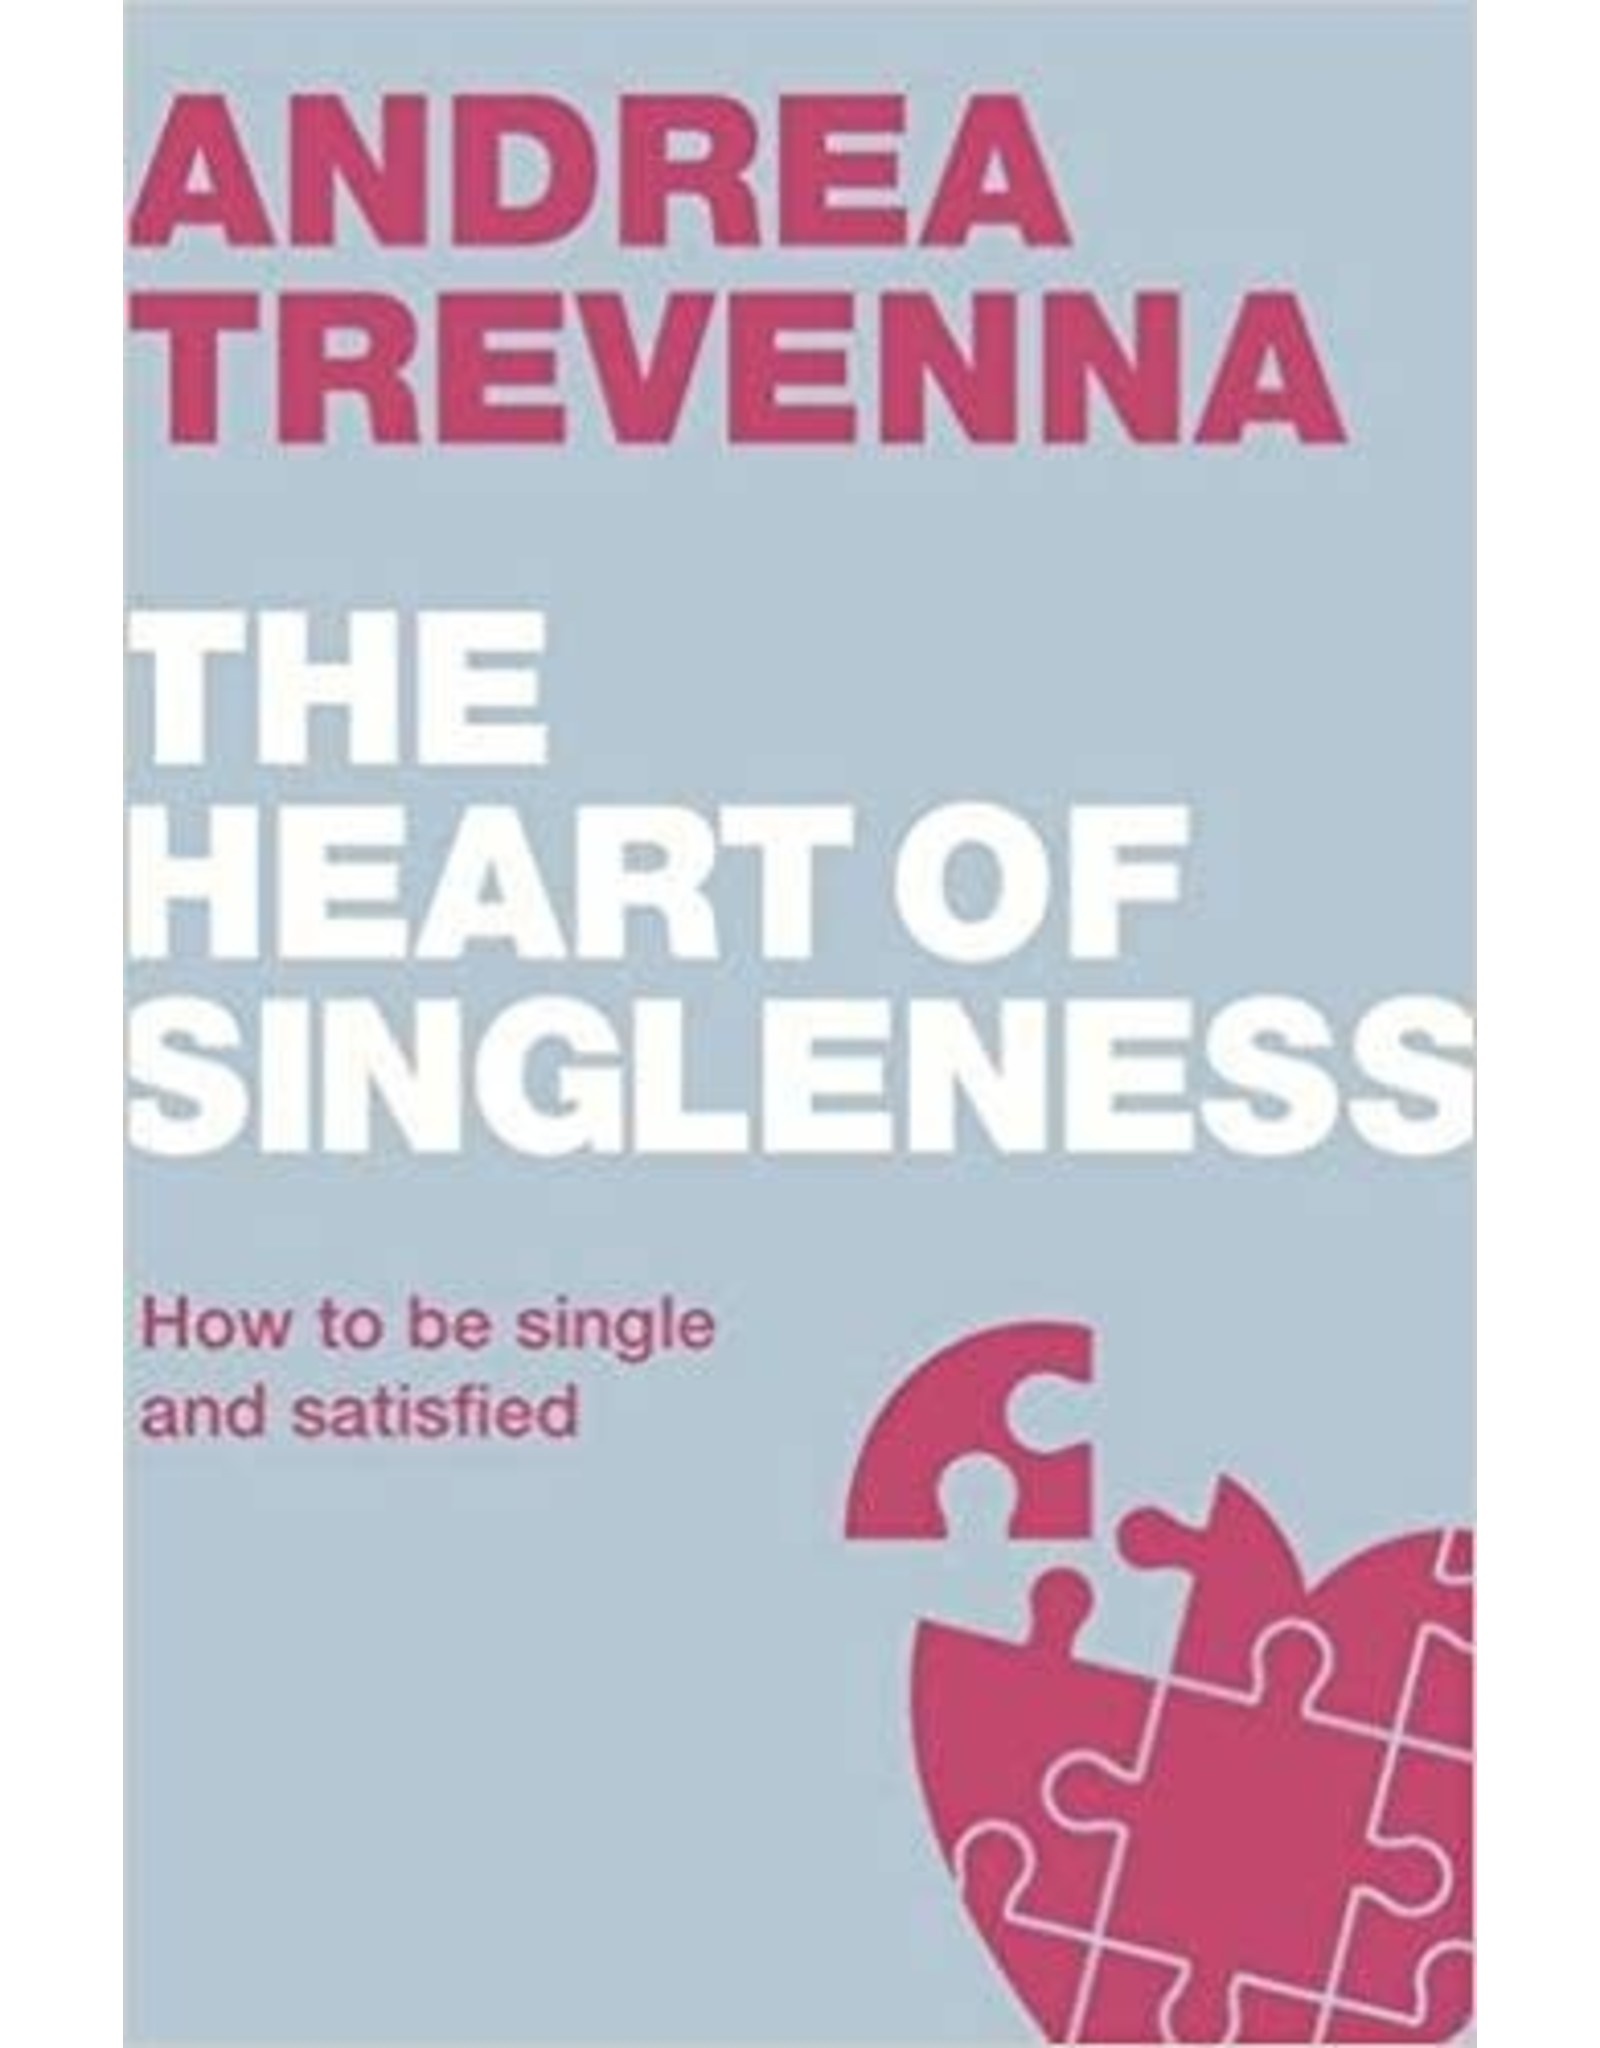 Trevenna The Heart of Singleness